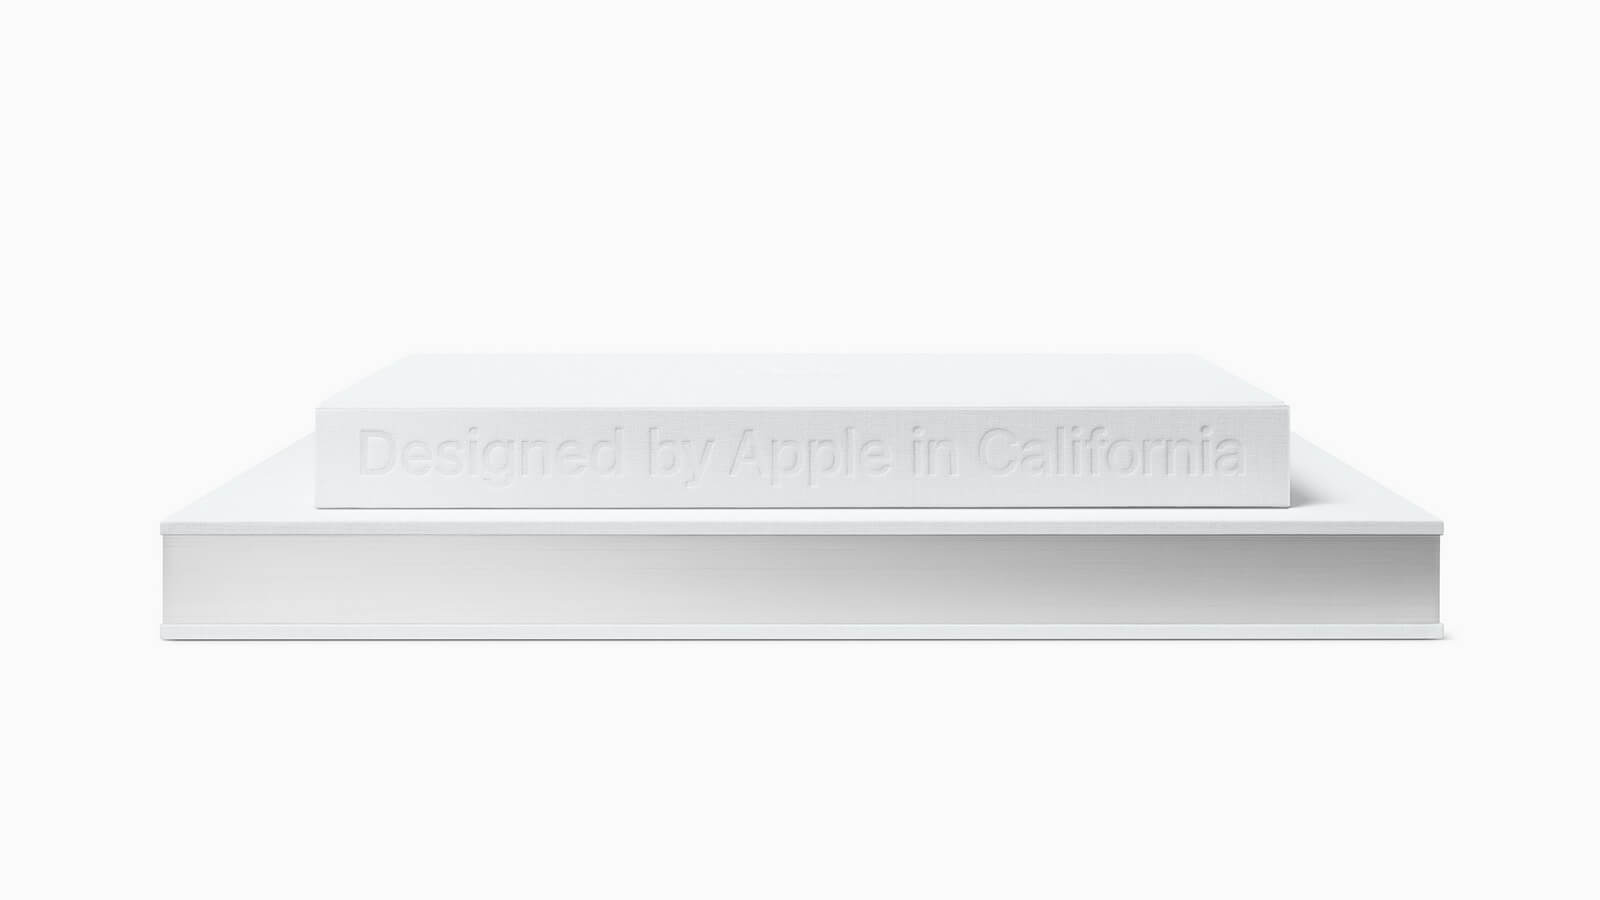 designed-by-apple-in-california-5